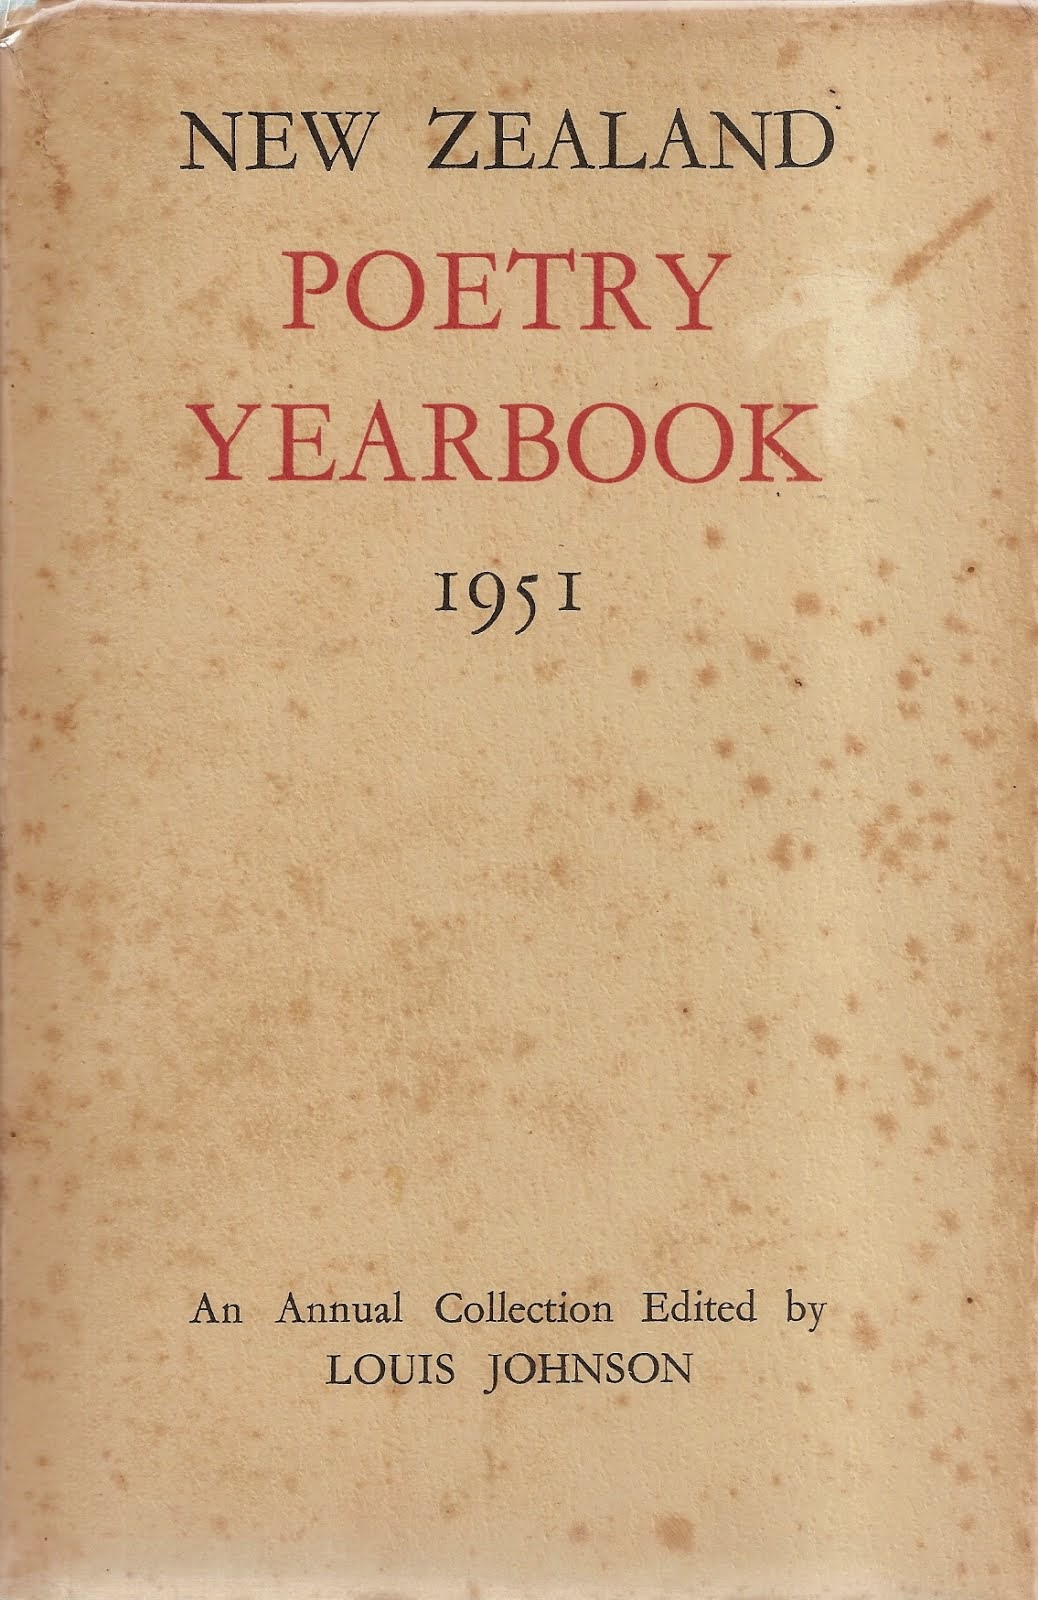 NZ Poetry Yearbook 1